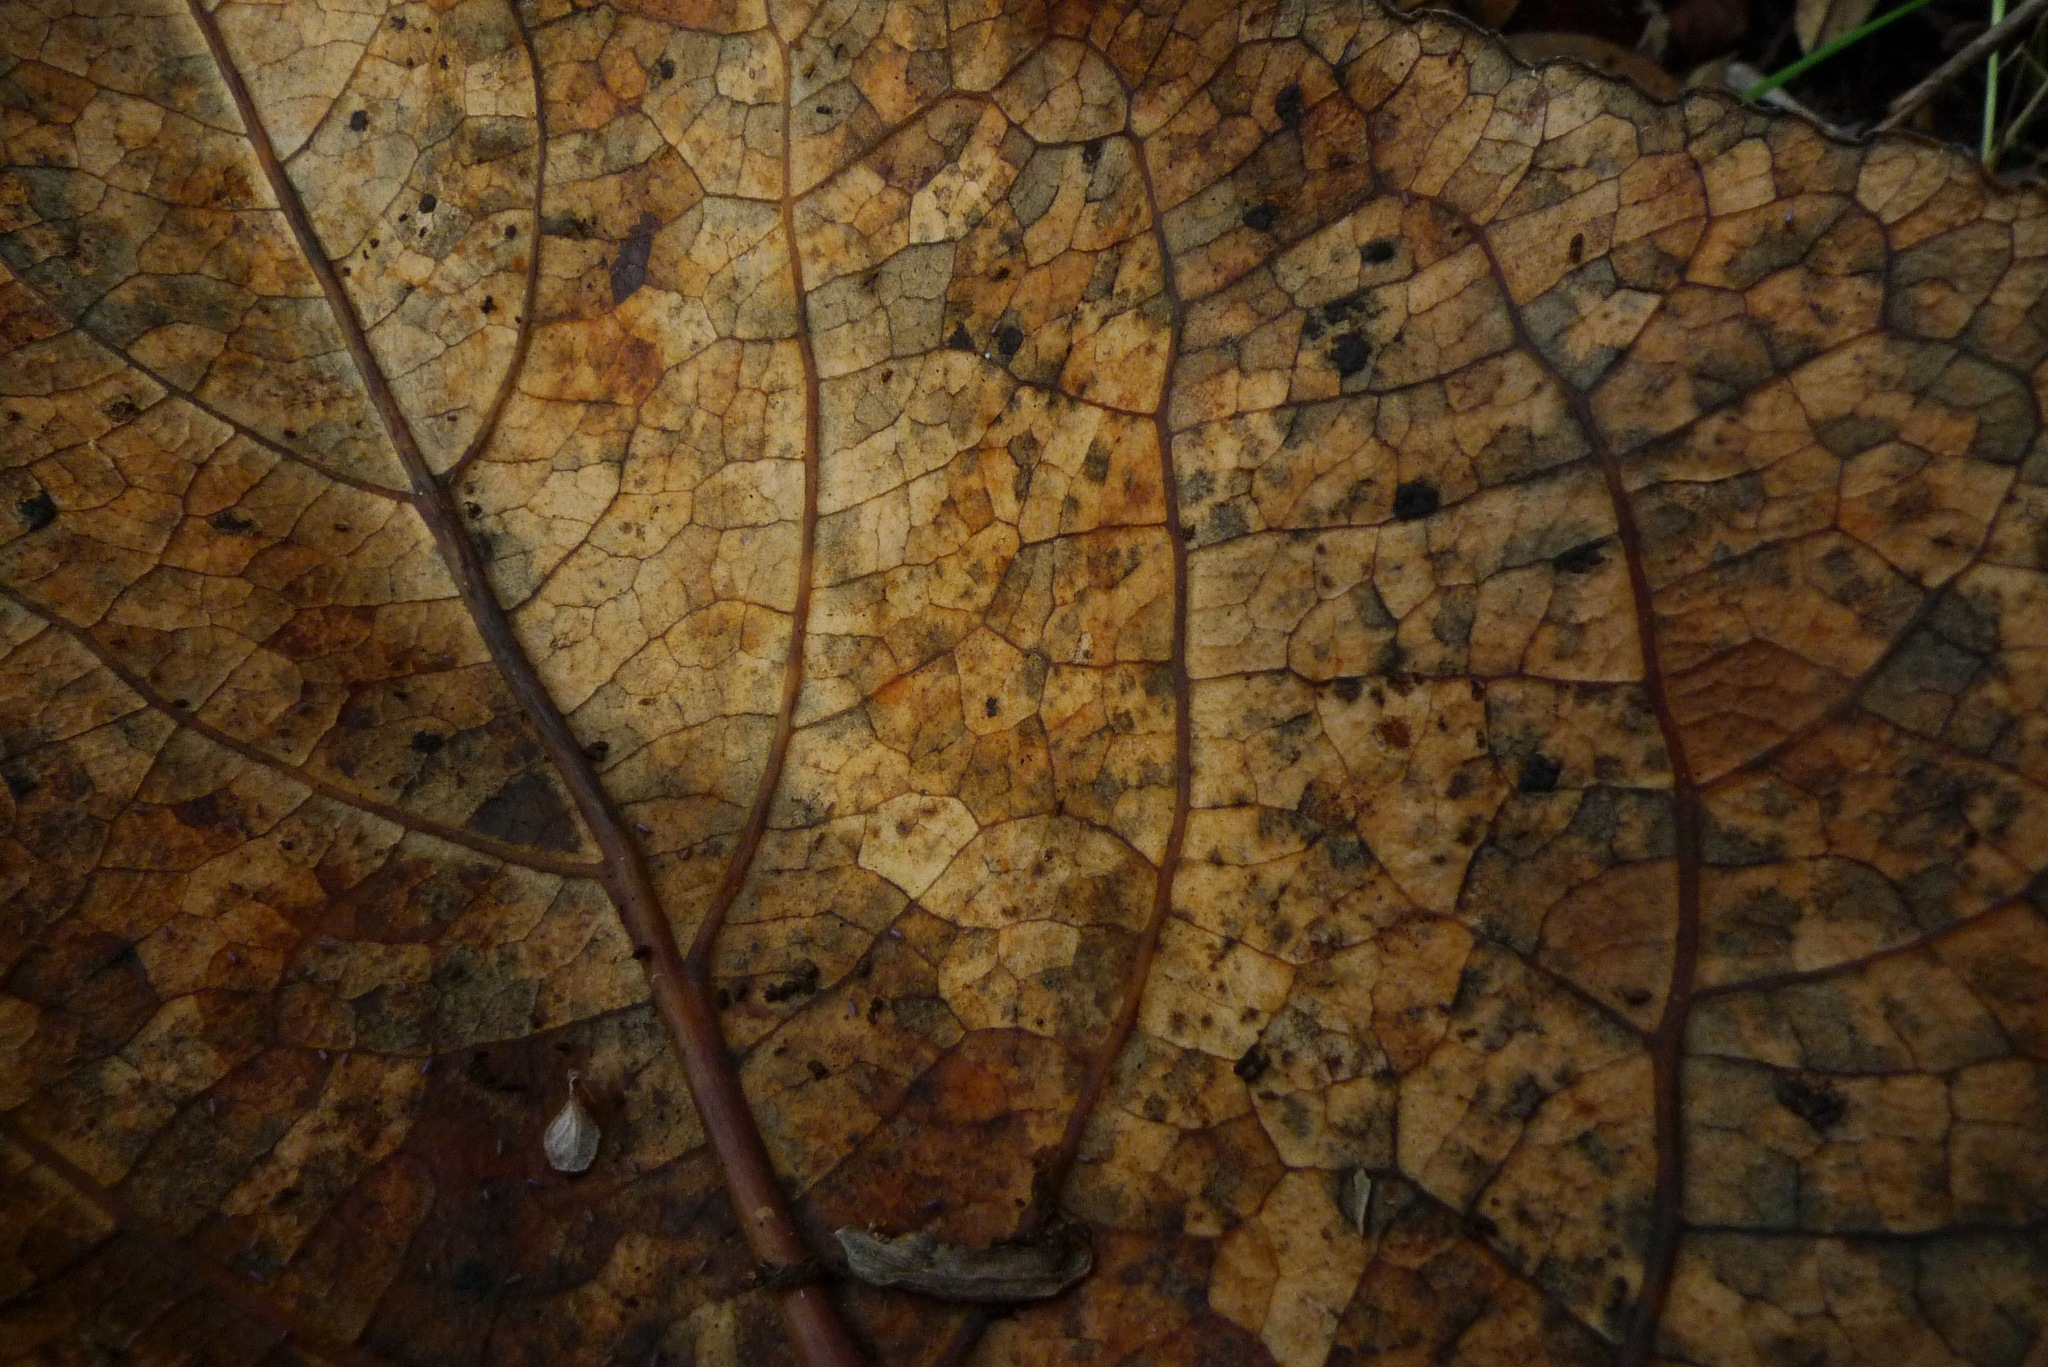 leaf carcass by solenoid